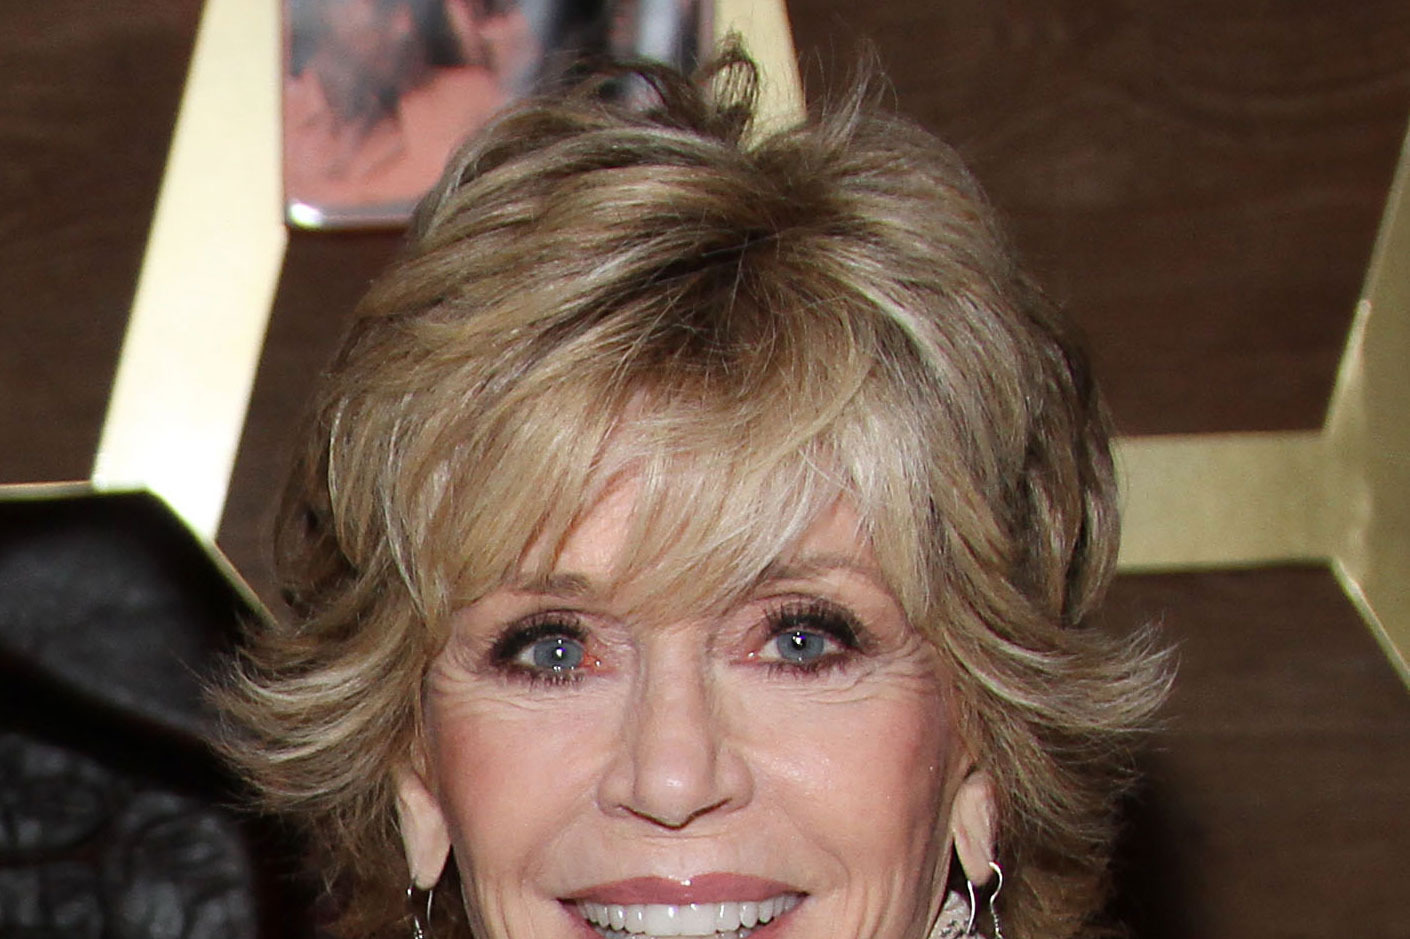 Jane Fonda at A Candid Conversation with Jane Fonda and Andy Cohen on the 40th Anniversary of her Academy Award winning role in Klute to benefit the Georgia Campaign for Adolescent Pregnancy Prevention at Darby Downstairs on October 11, 2012 in New York City.